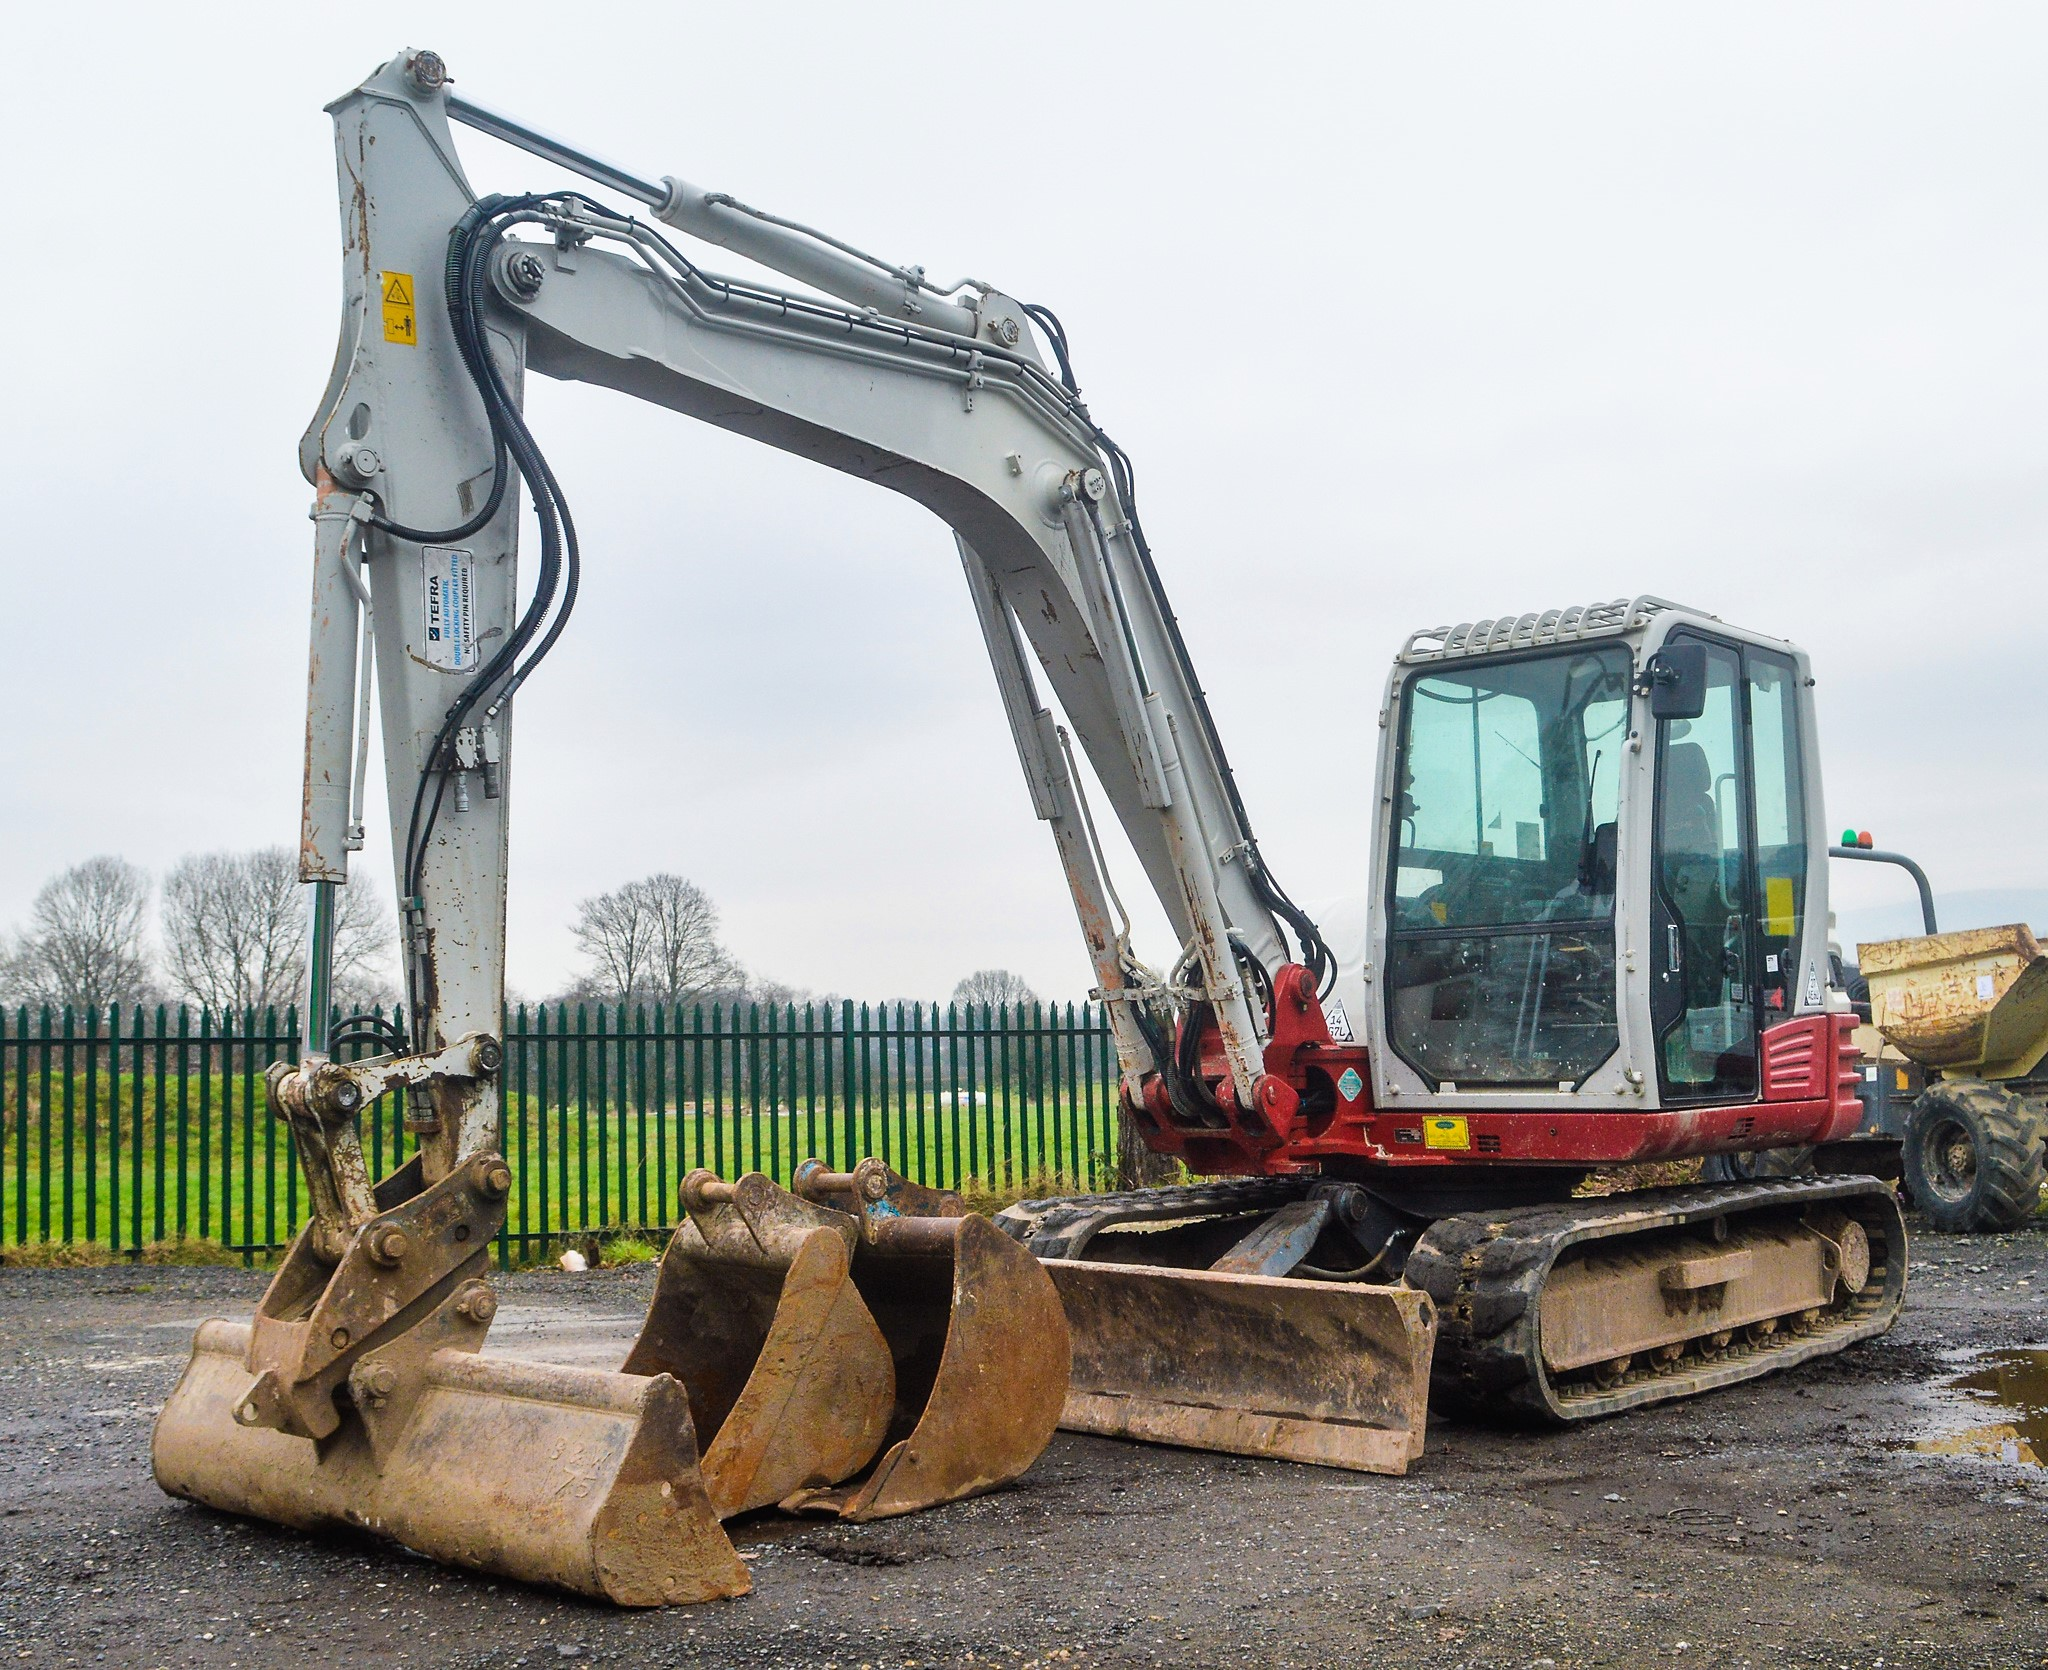 Takeuchi TB285 8 5 tonne rubber tracked excavator Year: 2012 S/N